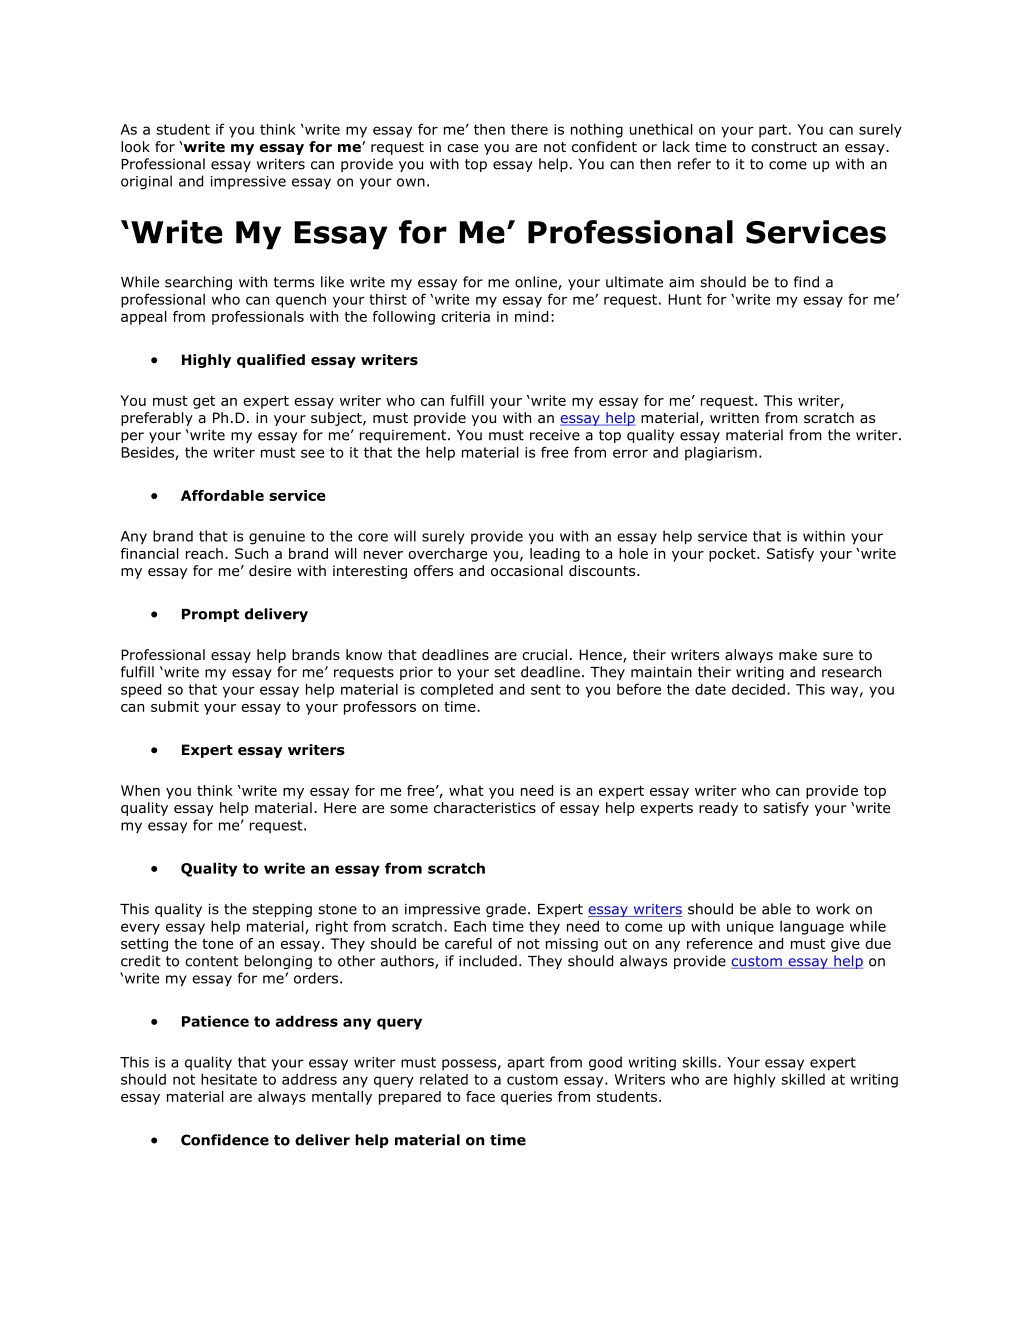 017 Write My Essay For Me Example As Student If You Think Surprising Please Canada Generator Full